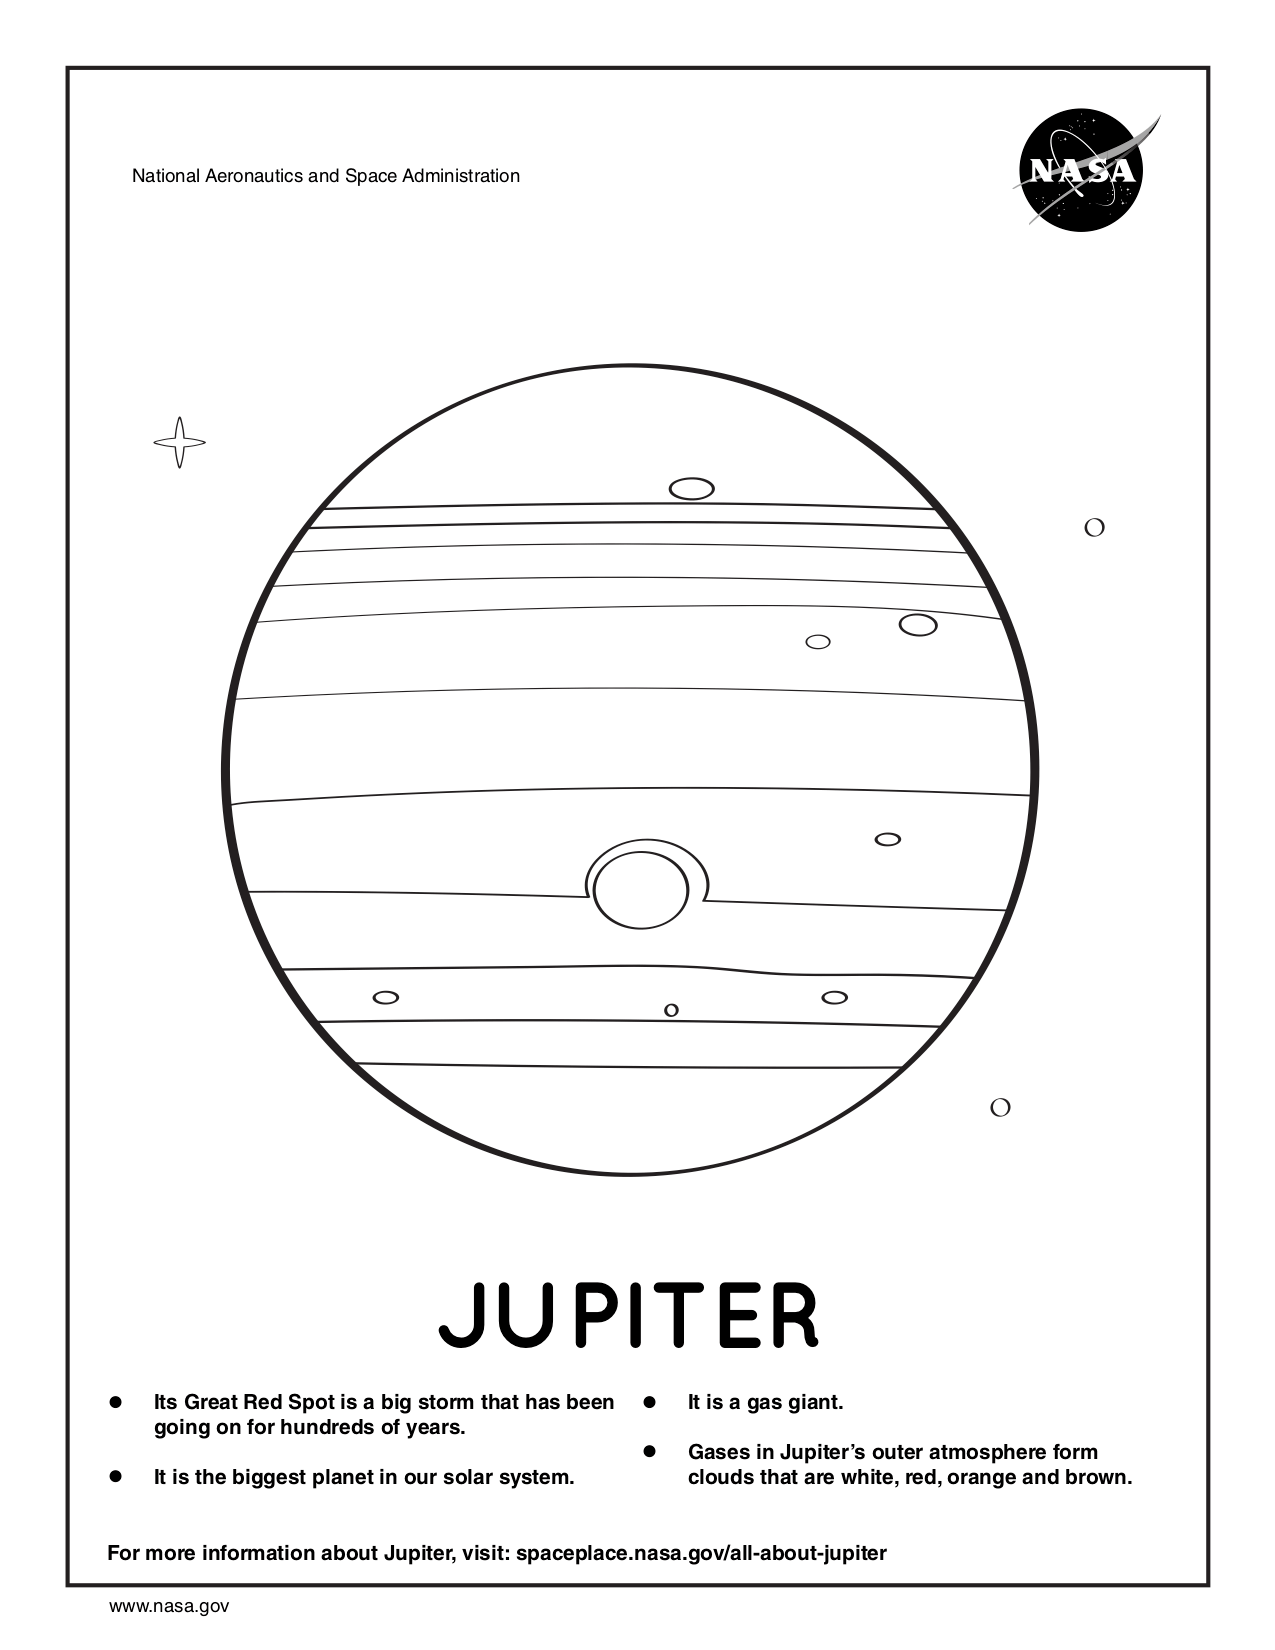 Coloring page for Jupiter.